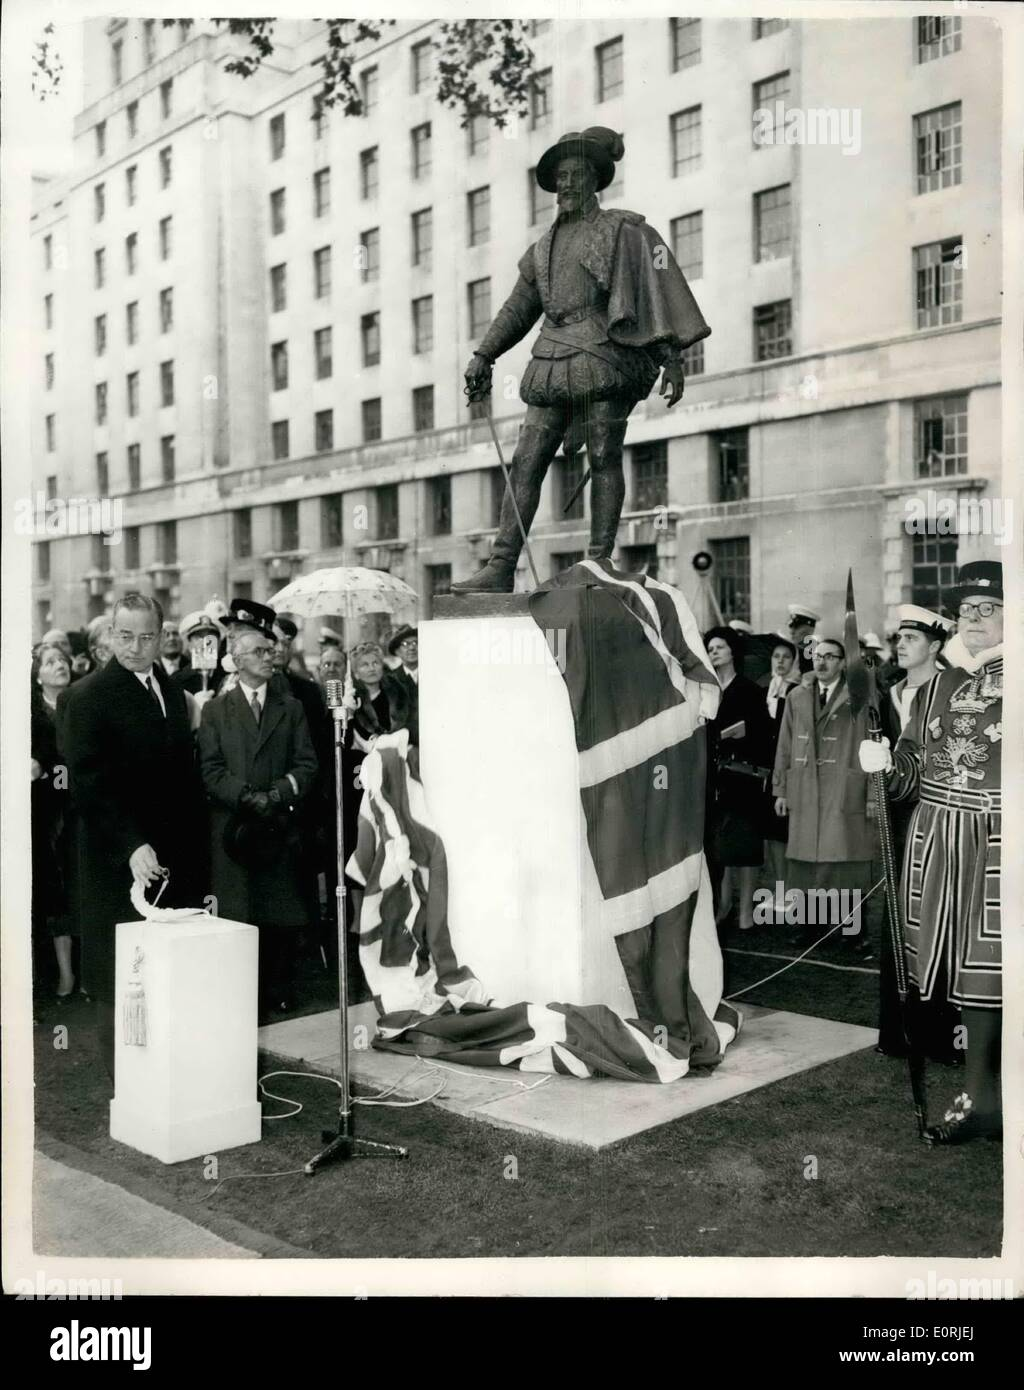 Oct. 10, 1959 - Sir Walter Raleigh Statue Unvelled. Ceremony Performed By U.S. Ambasaddor: Mr. John Hay Whitney the Unhited States Ambassador to London this morning unveiled the new Sir Walter Raleich Statue on the lawn in front of the new Air Ministry buildingt in Whitehall. The statue was sculptored by William McMillian R.A. and paid for by a number of City bodies, the Ends of the Earth Club and the English Speaking Union-and is to mark the 350th, anniversary of the first permanent British Colony at Jamestown, Virginia. Photo shows. Mr - Stock Image